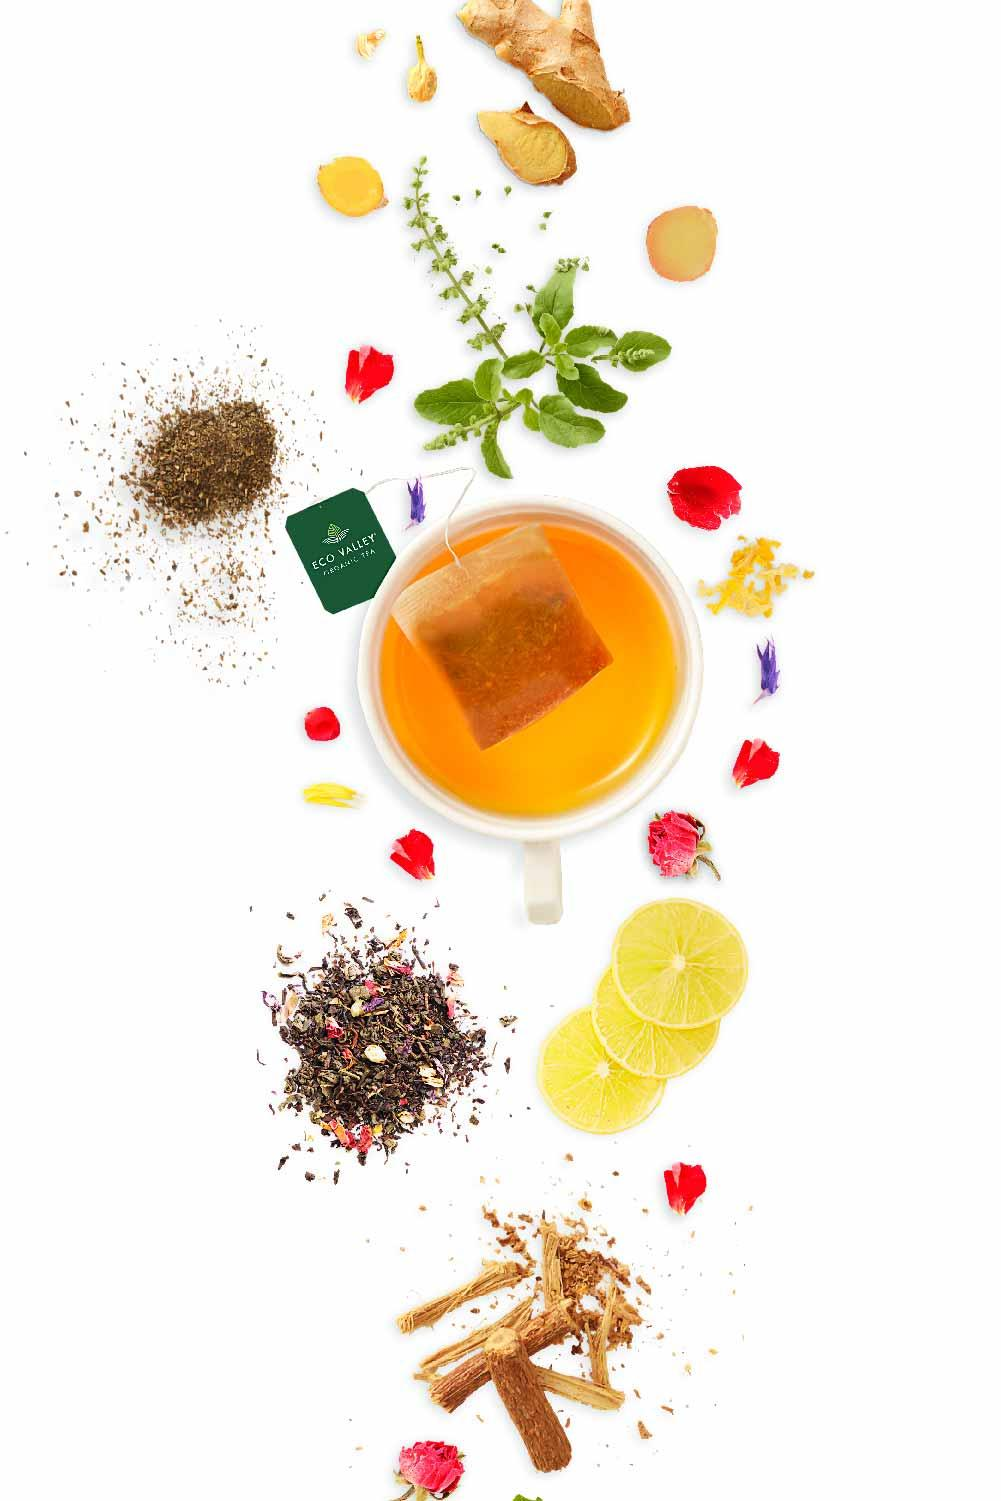 Made with rich and aromatic tea leaves, it's smooth to taste, never bitter. Rich in flavours